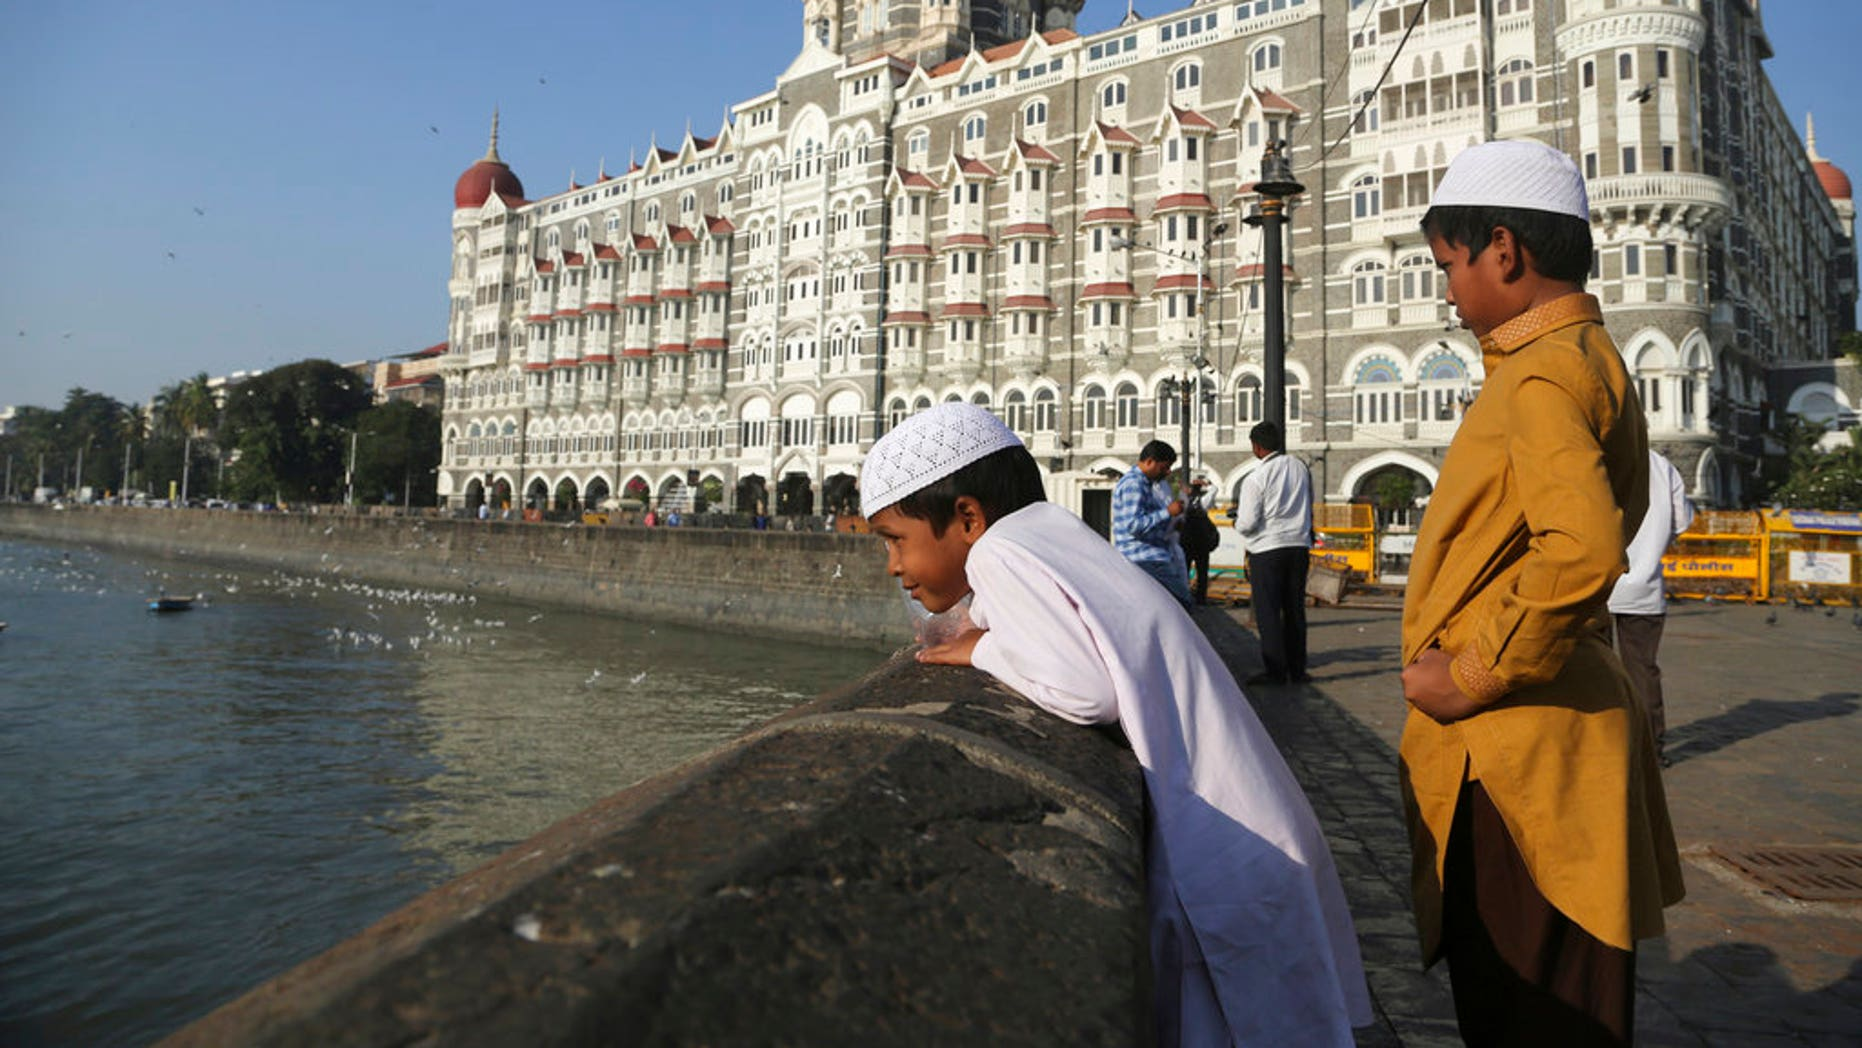 In this Nov 17, 2018, photo, two Muslim boys stand outside the iconic Taj Mahal Palace hotel, the epicenter of the 2008 terror attacks that killed 166 people in Mumbai, India.